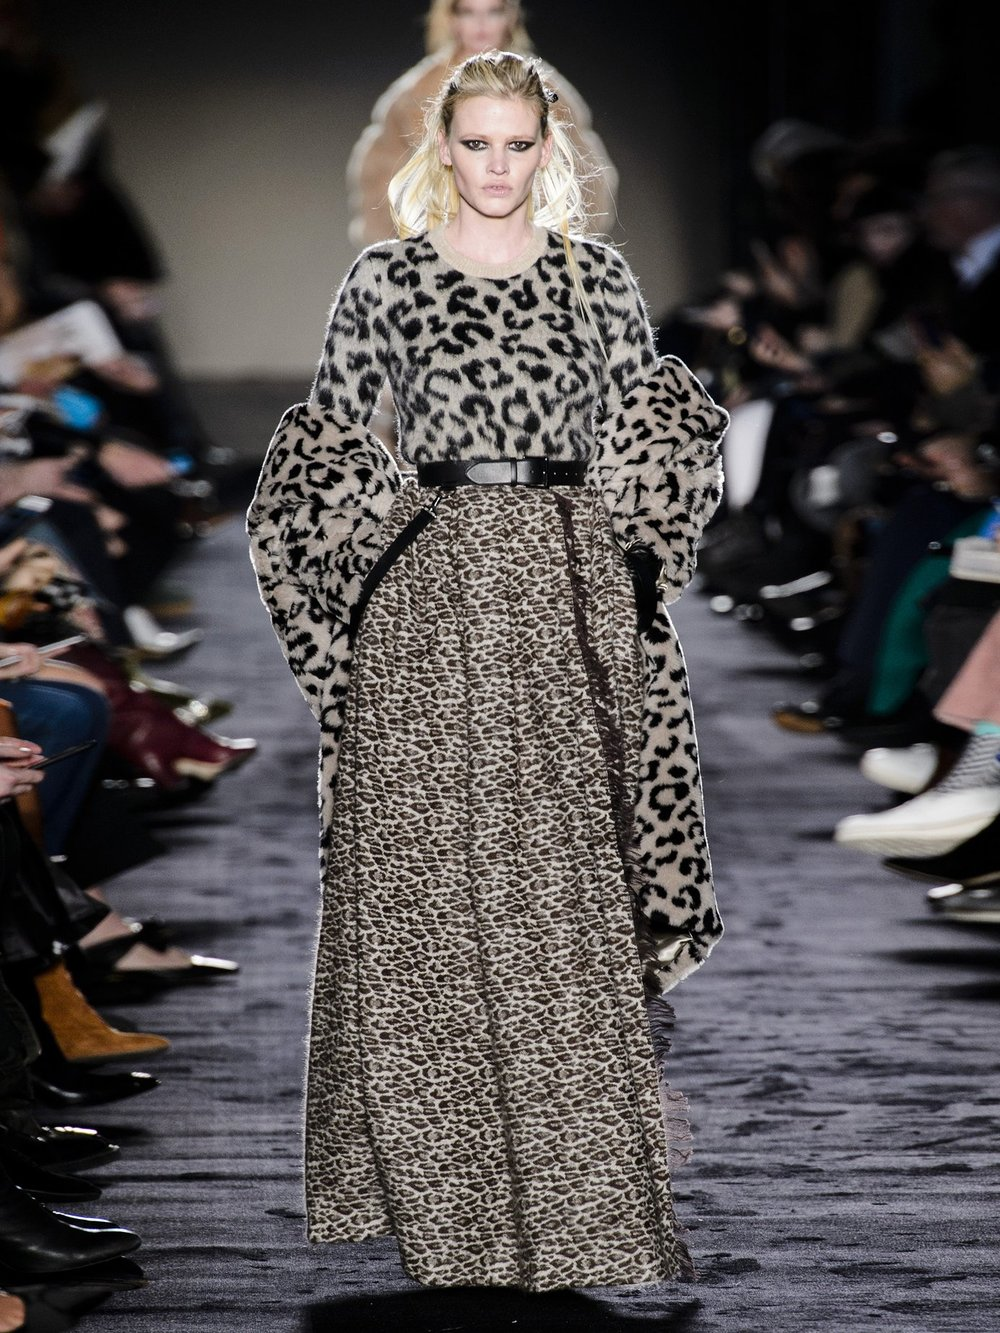 Max Mara Ready-to-Wear Fall 2018  - I looked at their collection by accident and then found myself loving a lot of the outfits, although I'd apply more restraint putting my look together for actual real life